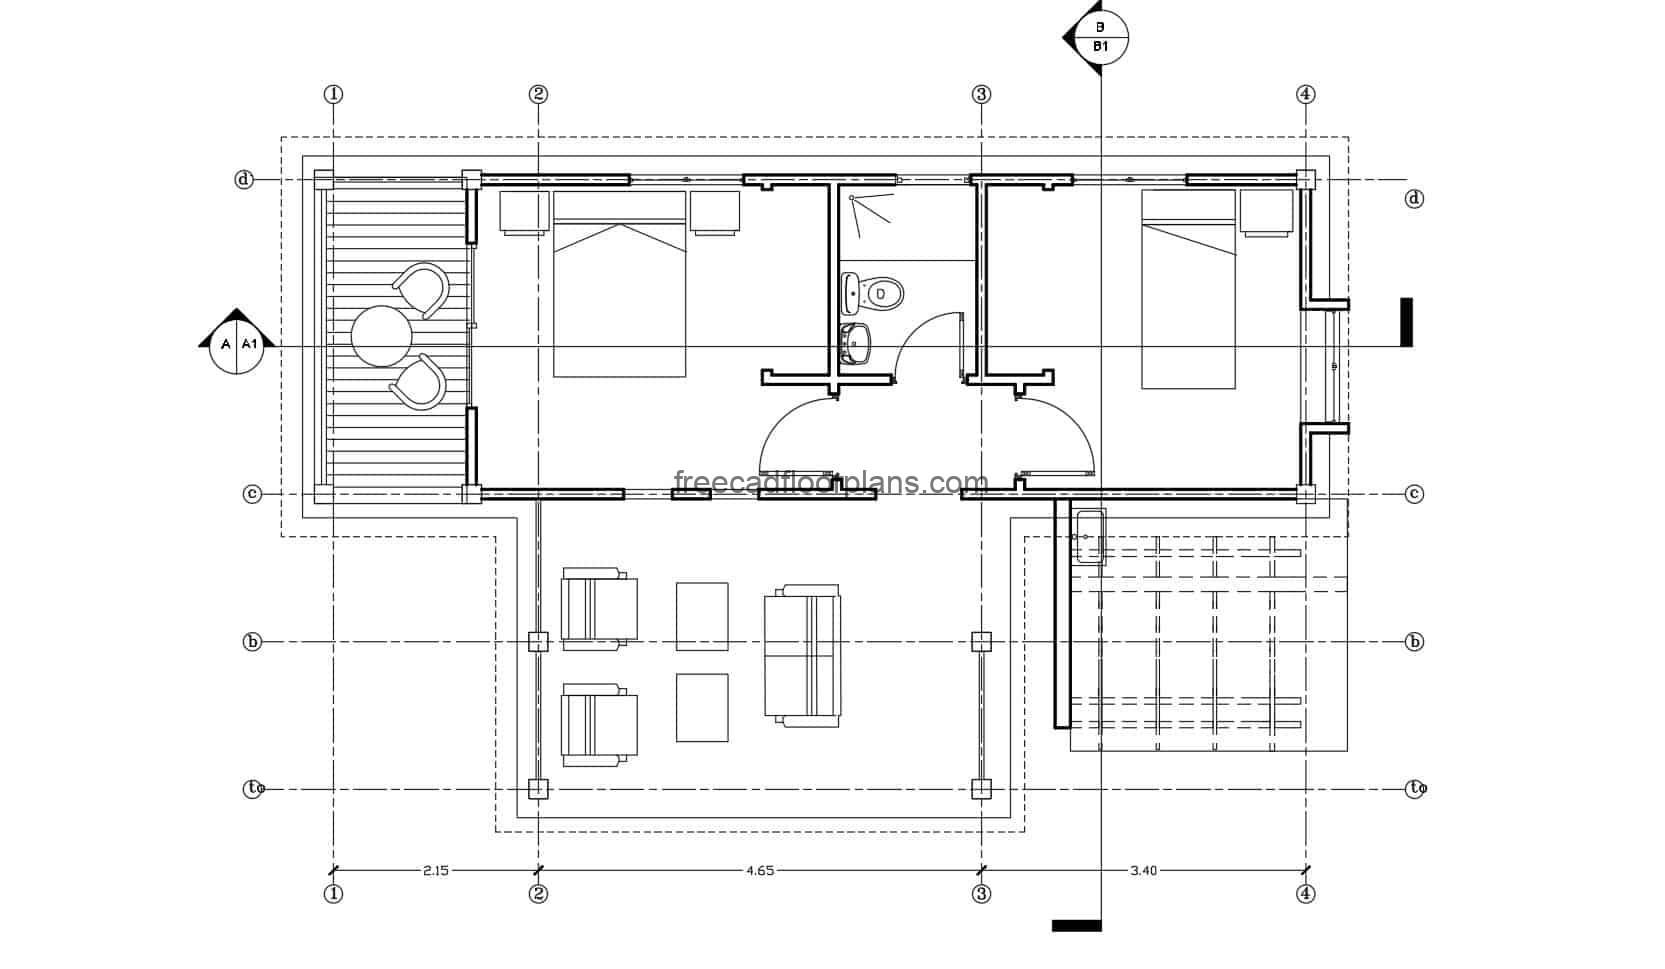 Bungalow house with two bedroom architectural DWG project